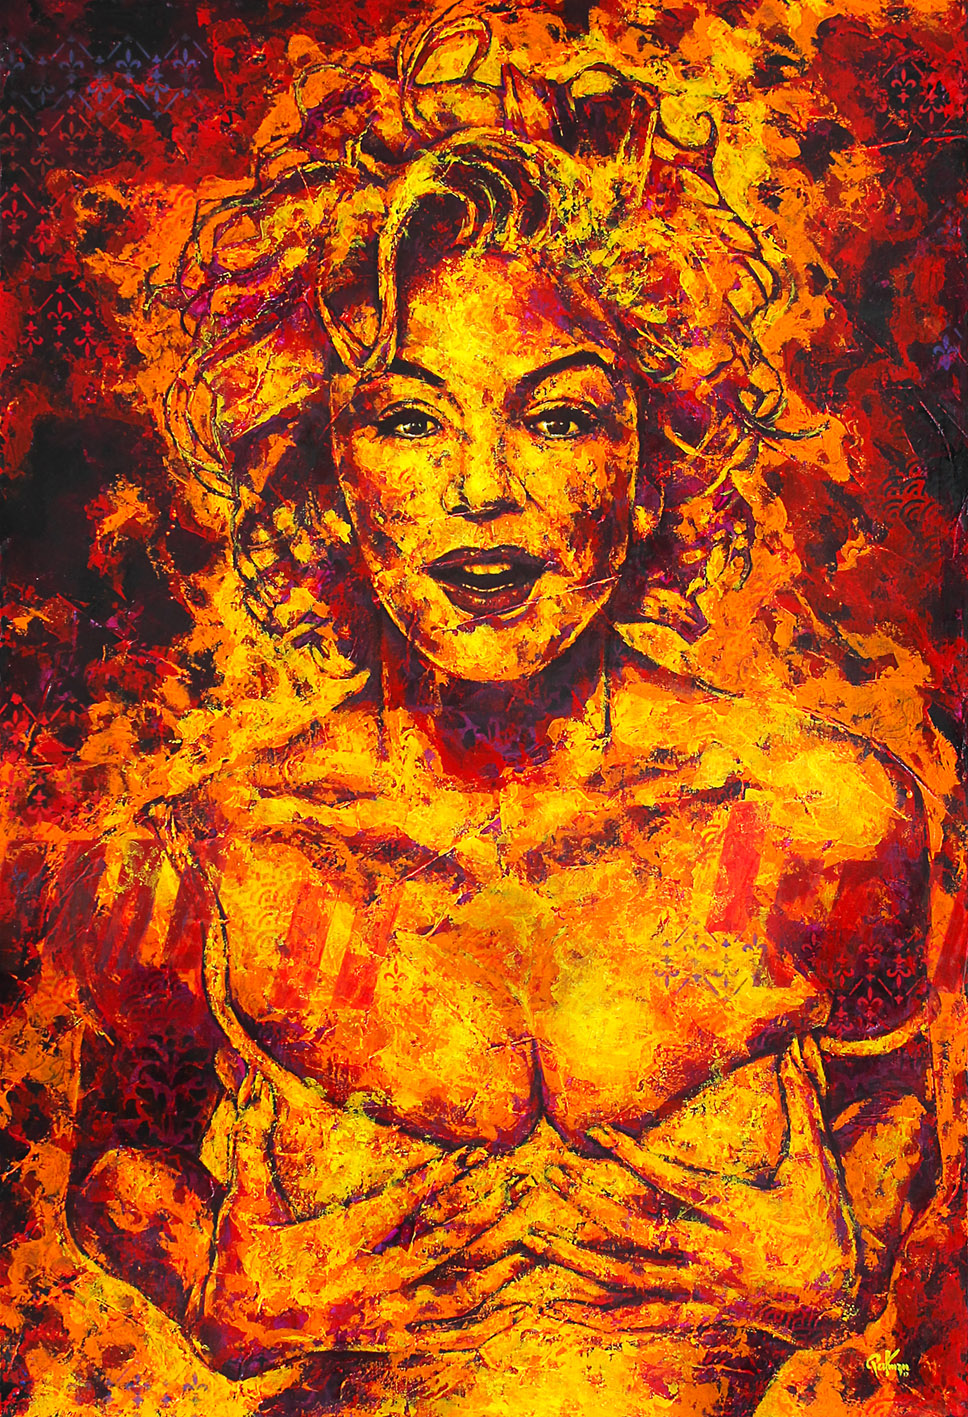 Fire_Marilyn#2_menor